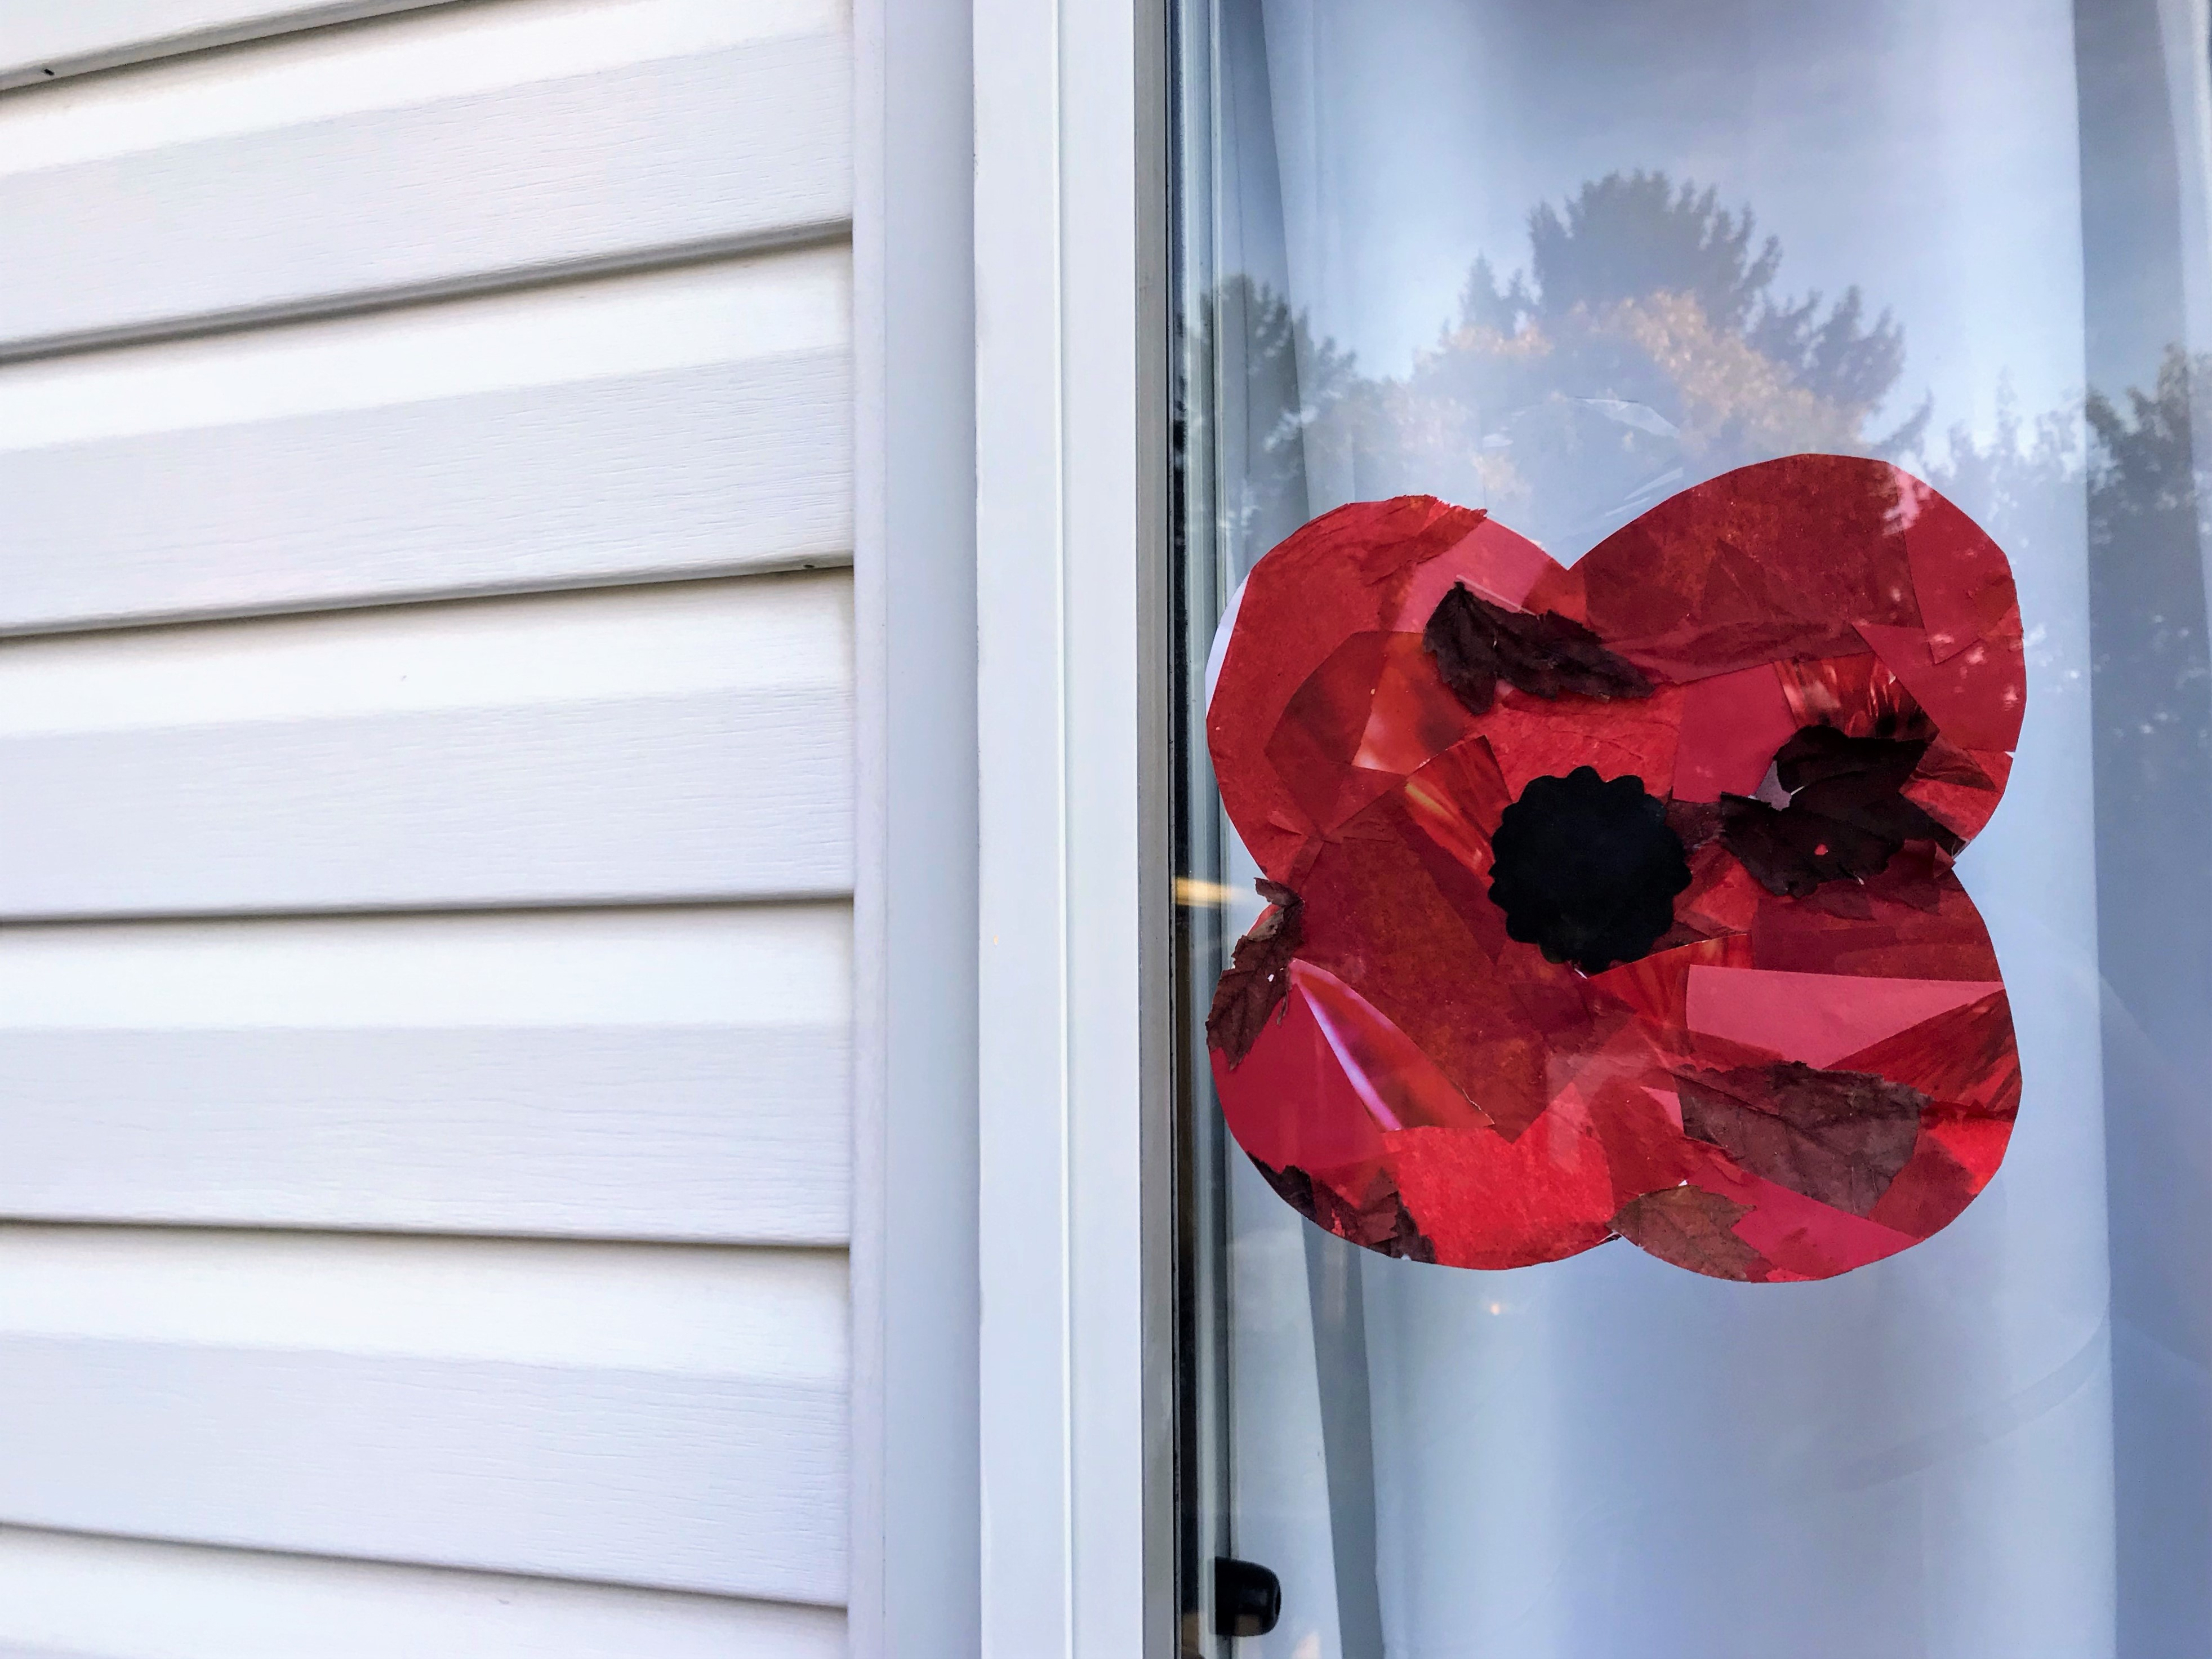 Photo of a red collaged poppy with a black centre displayed in the window of a house with white aluminum siding